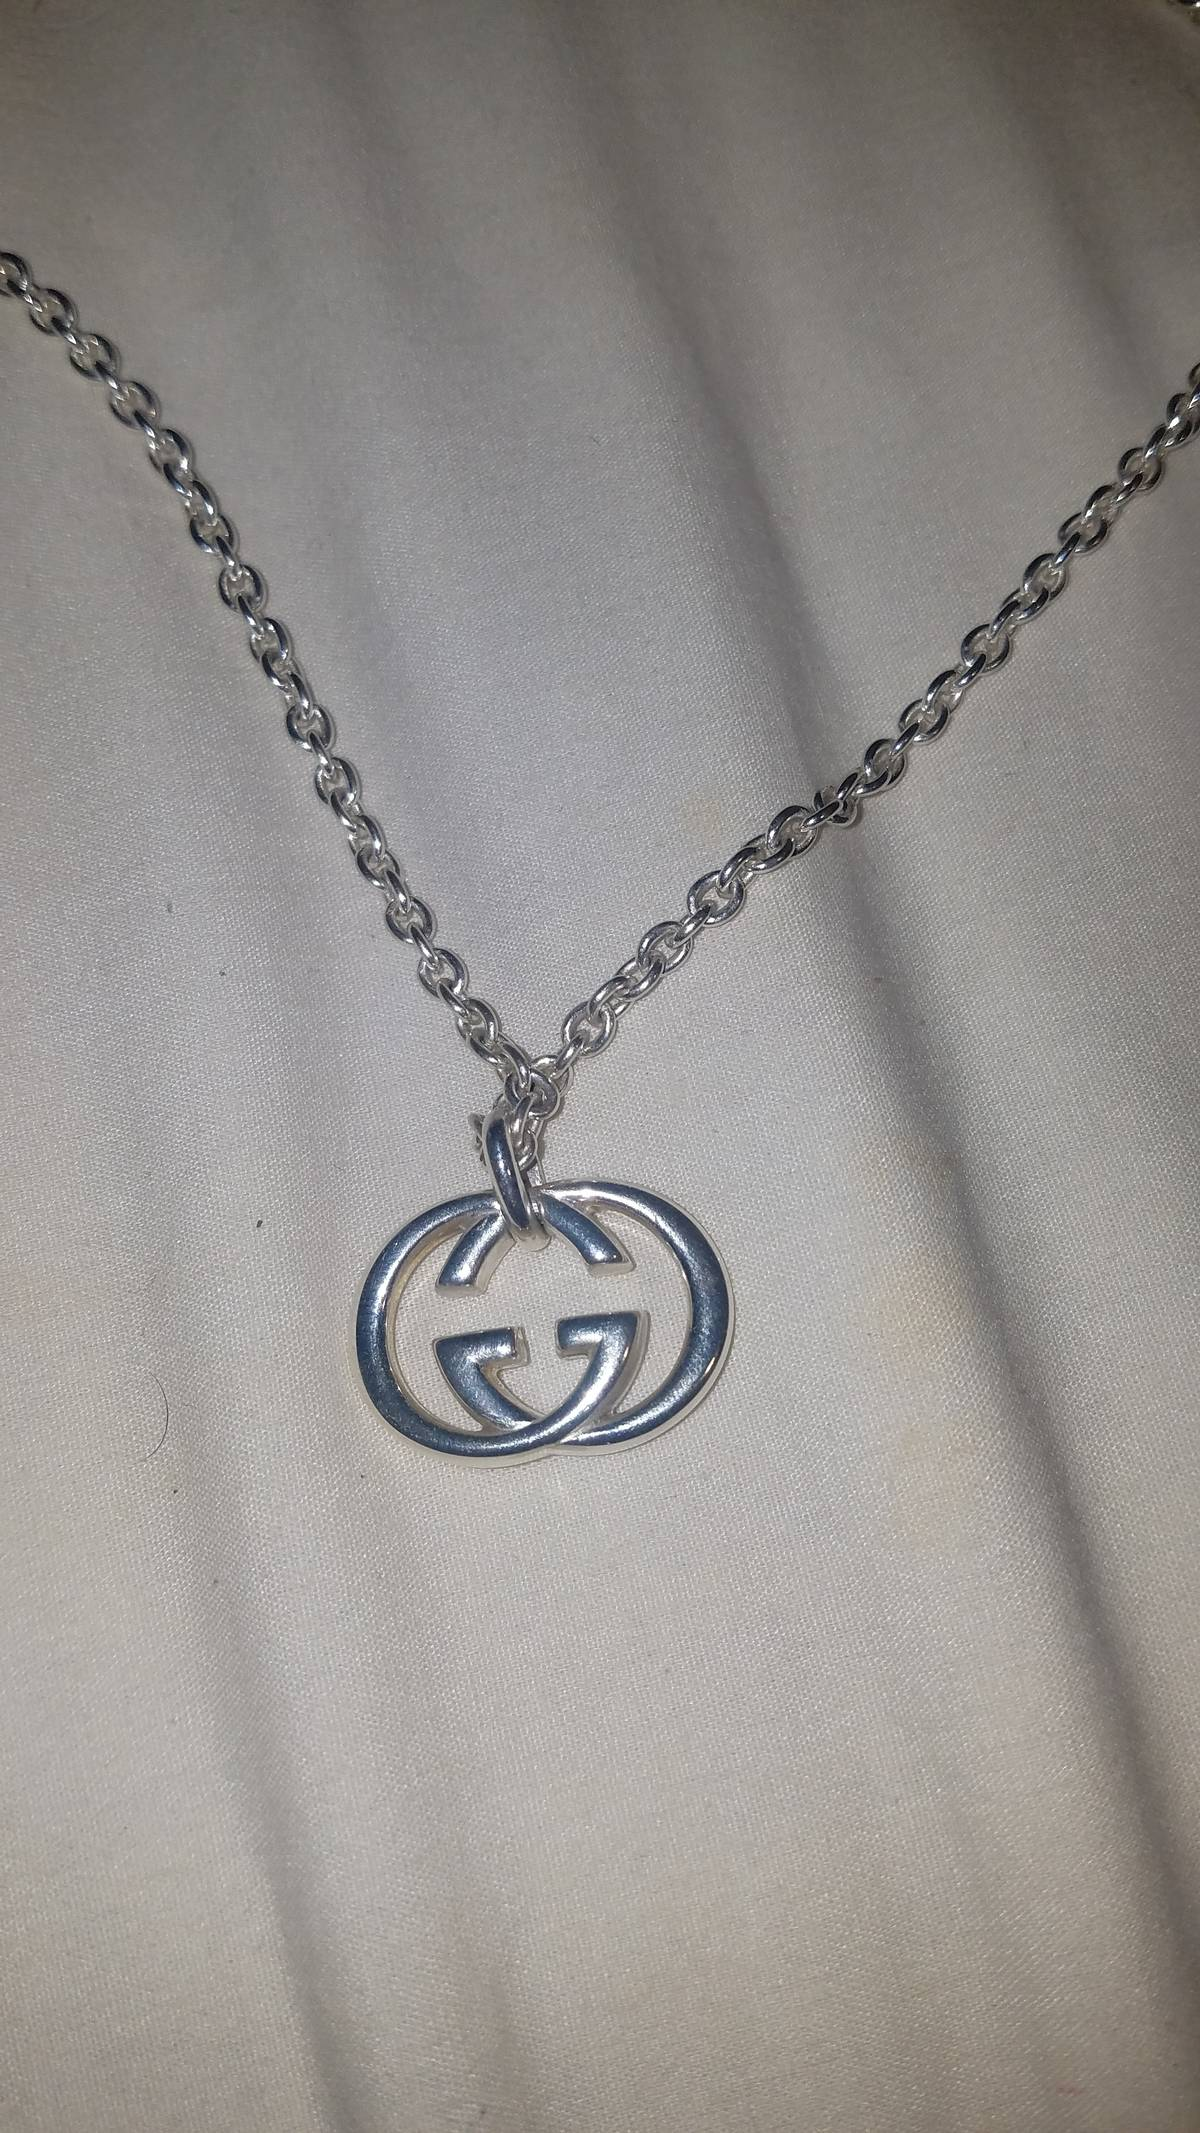 4d4ba3144a Gucci Sterling Silver Double G Pendant Necklace Size One Size $155